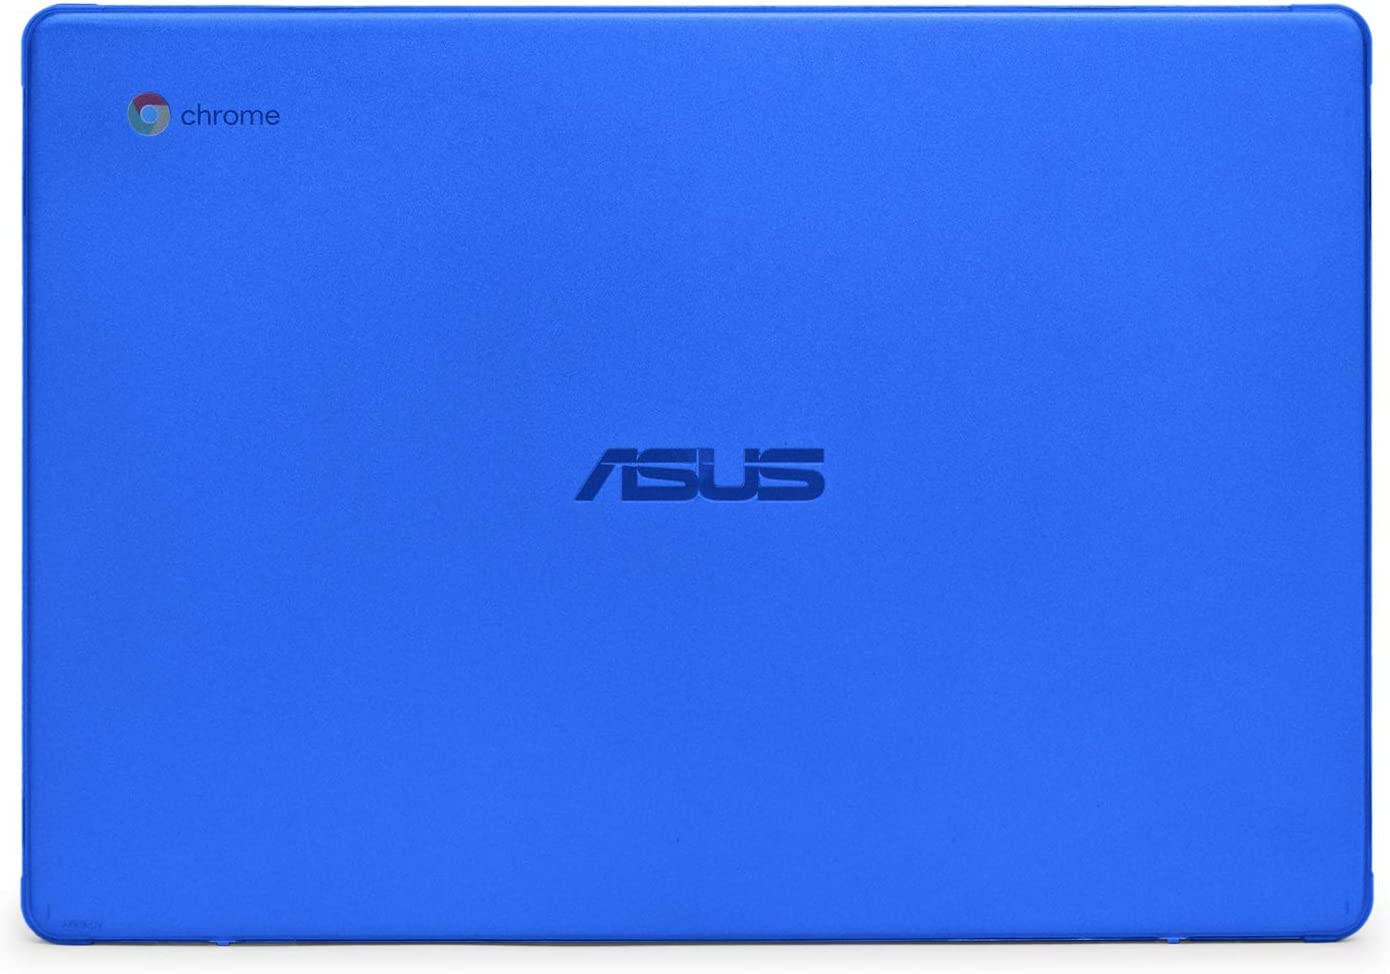 mCover Hard Shell Case for 2019 14-inch ASUS Chromebook C423NA Series Laptop - ASUS C423 Blue